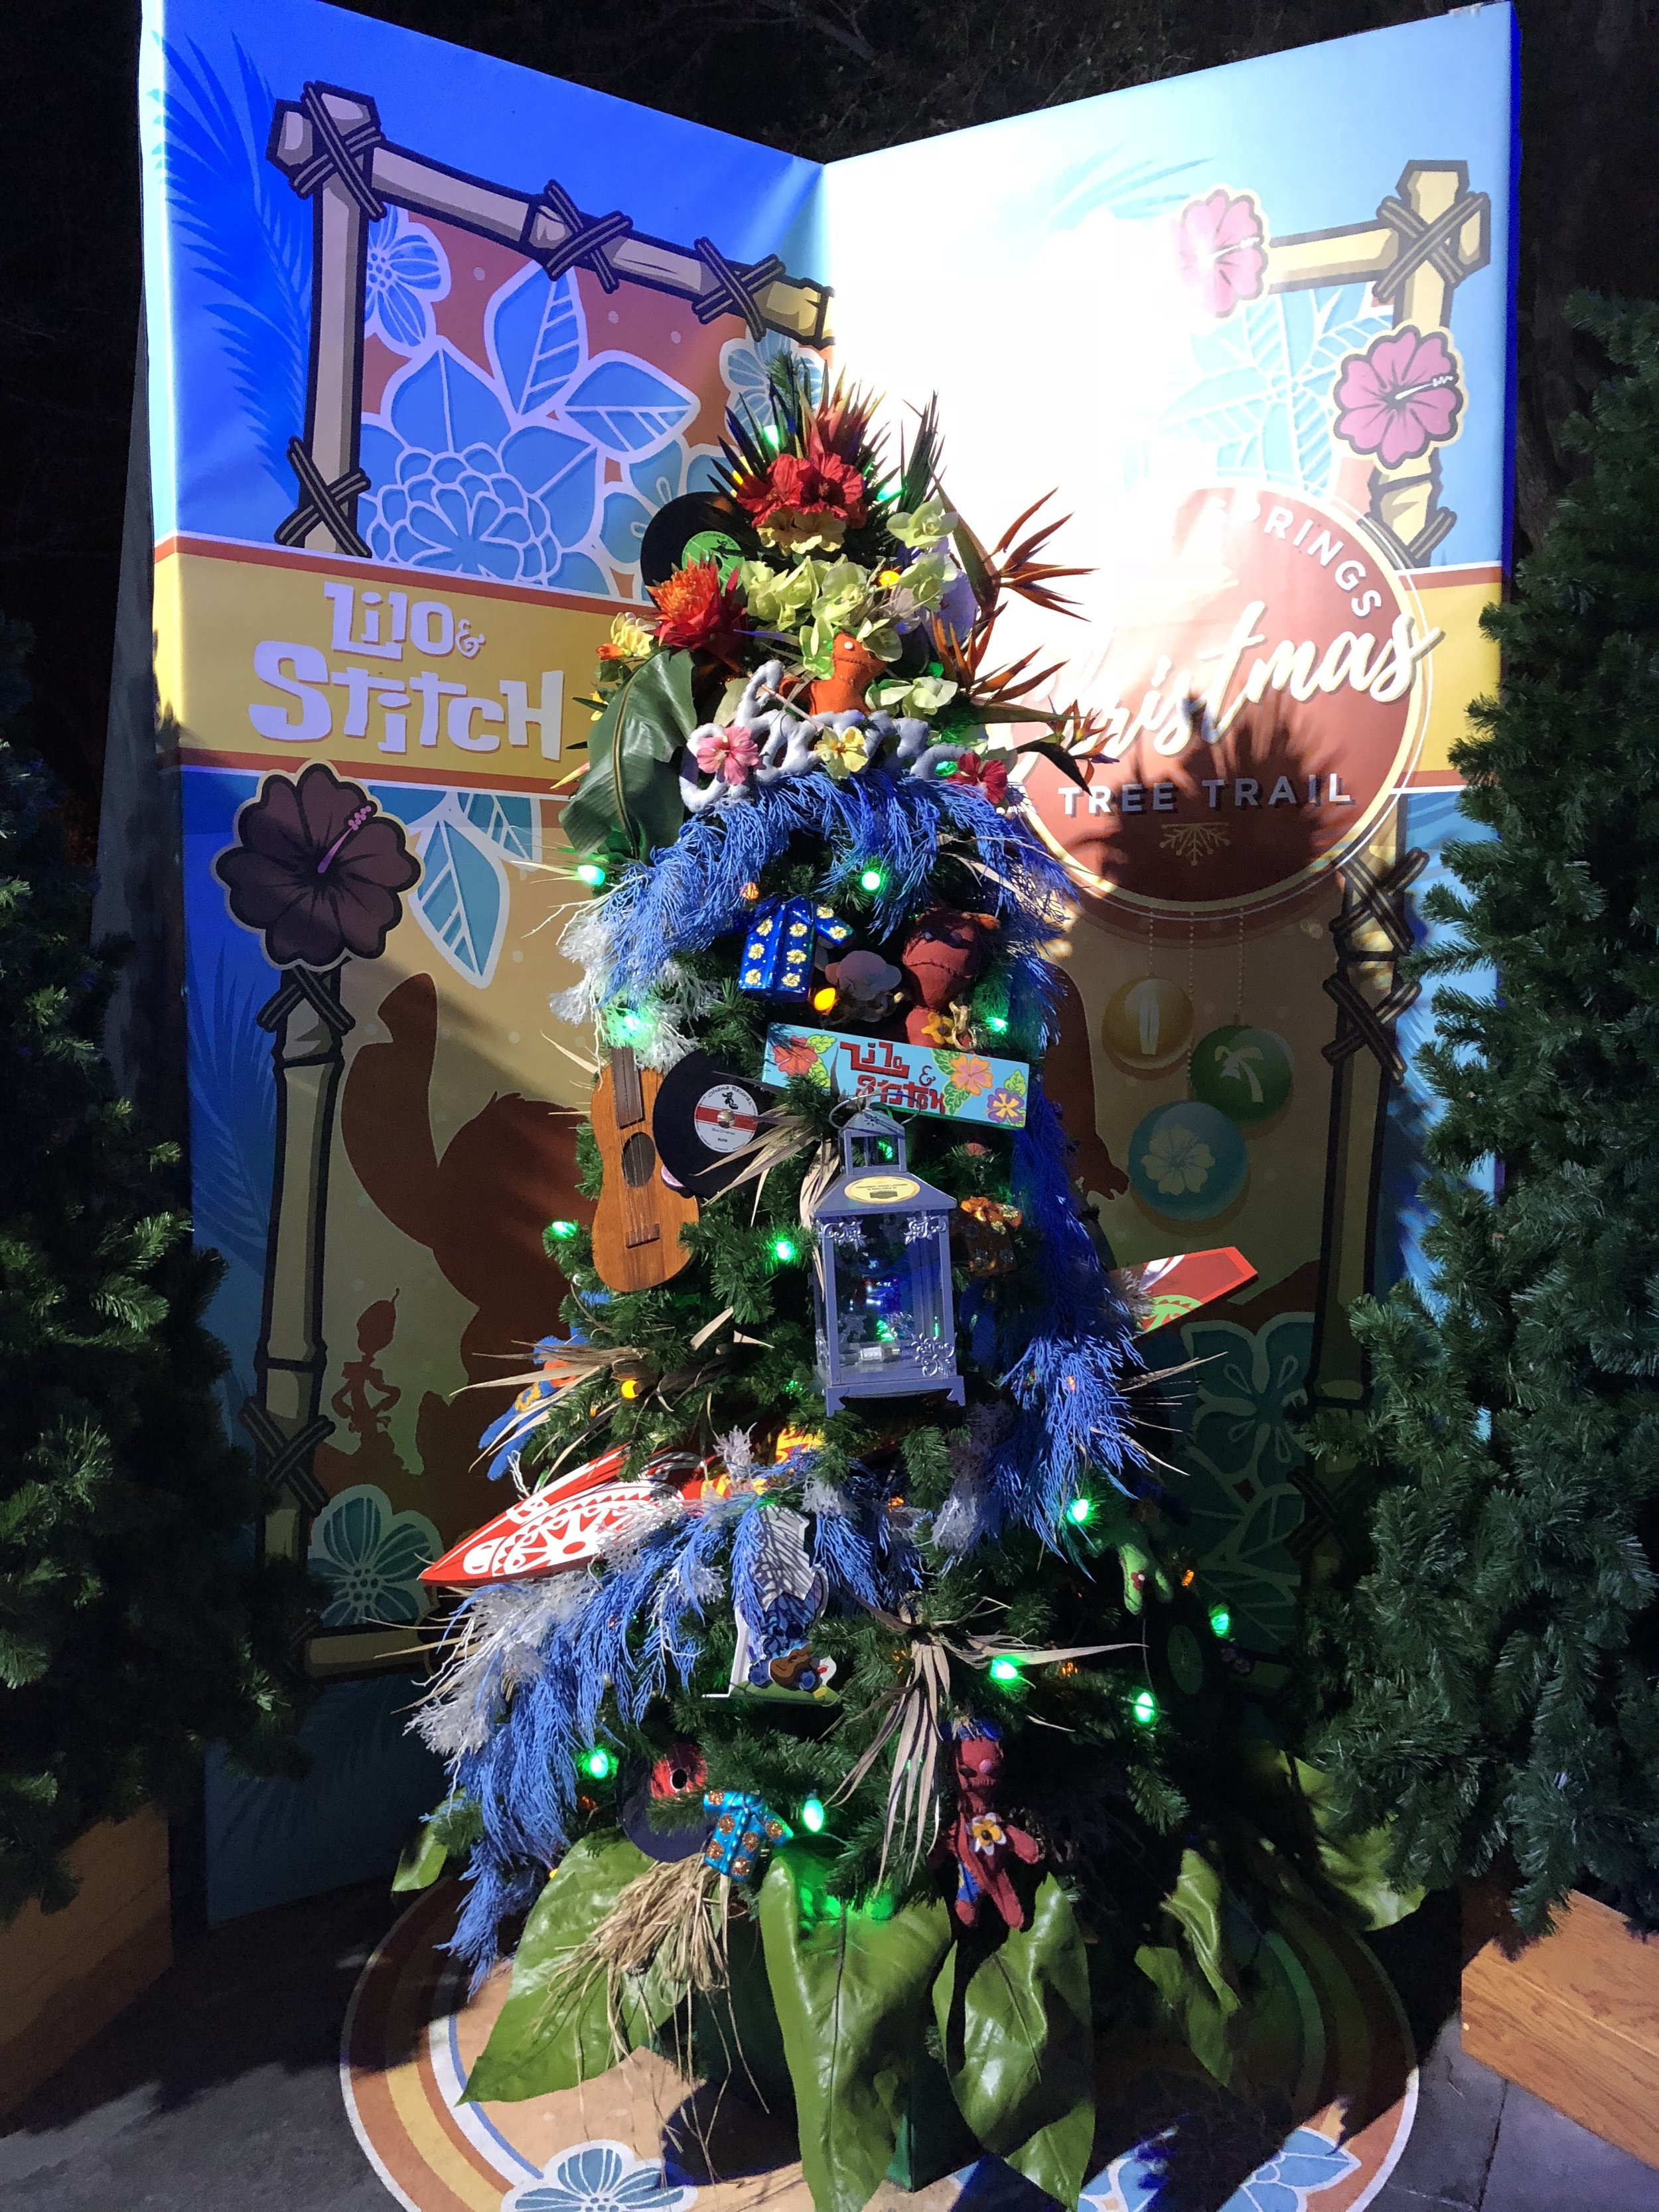 A little further back view of the Lilo and Stitch Tree.